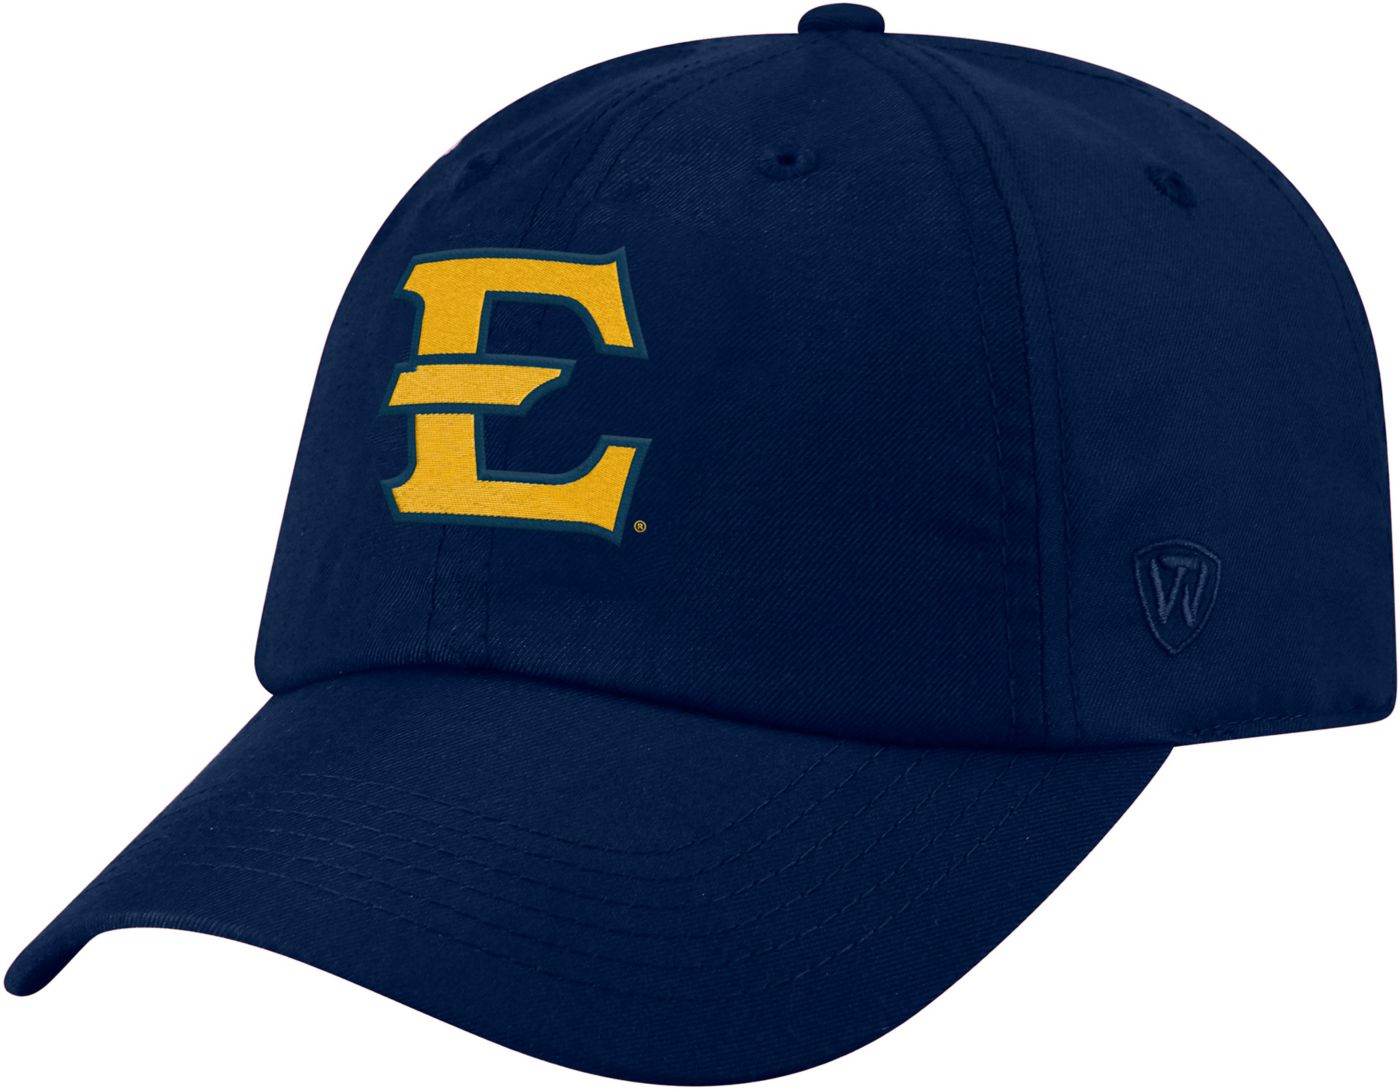 Top of the World Men's East Tennessee State Buccaneers Navy Staple Adjustable Hat